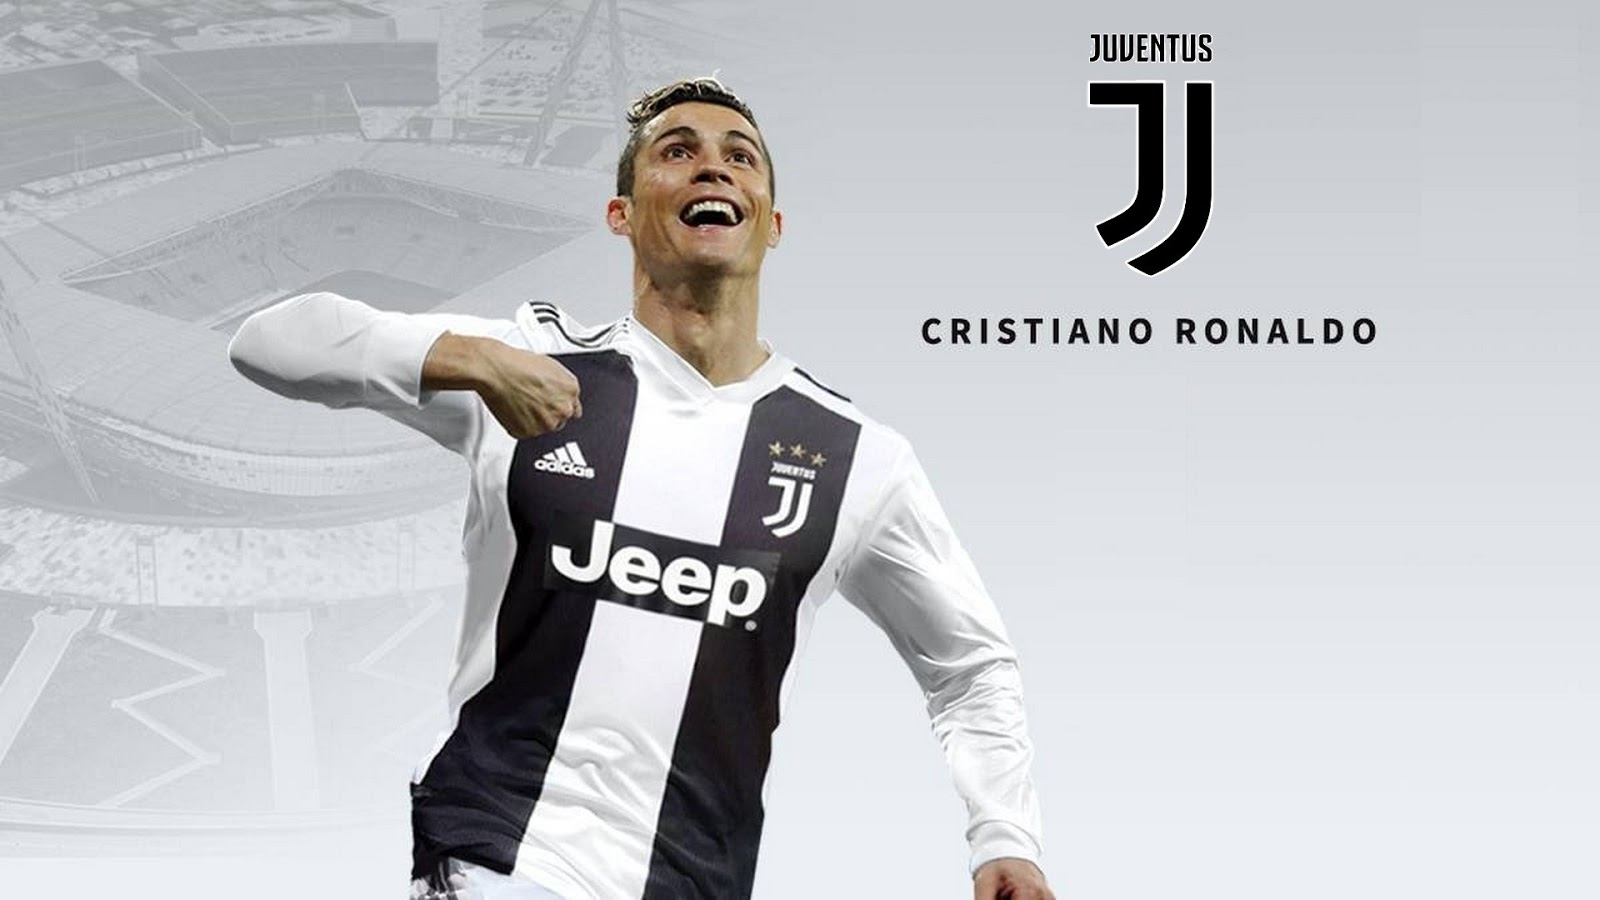 Cristiano Ronaldo 2018 Wallpaper Hd With Juventus